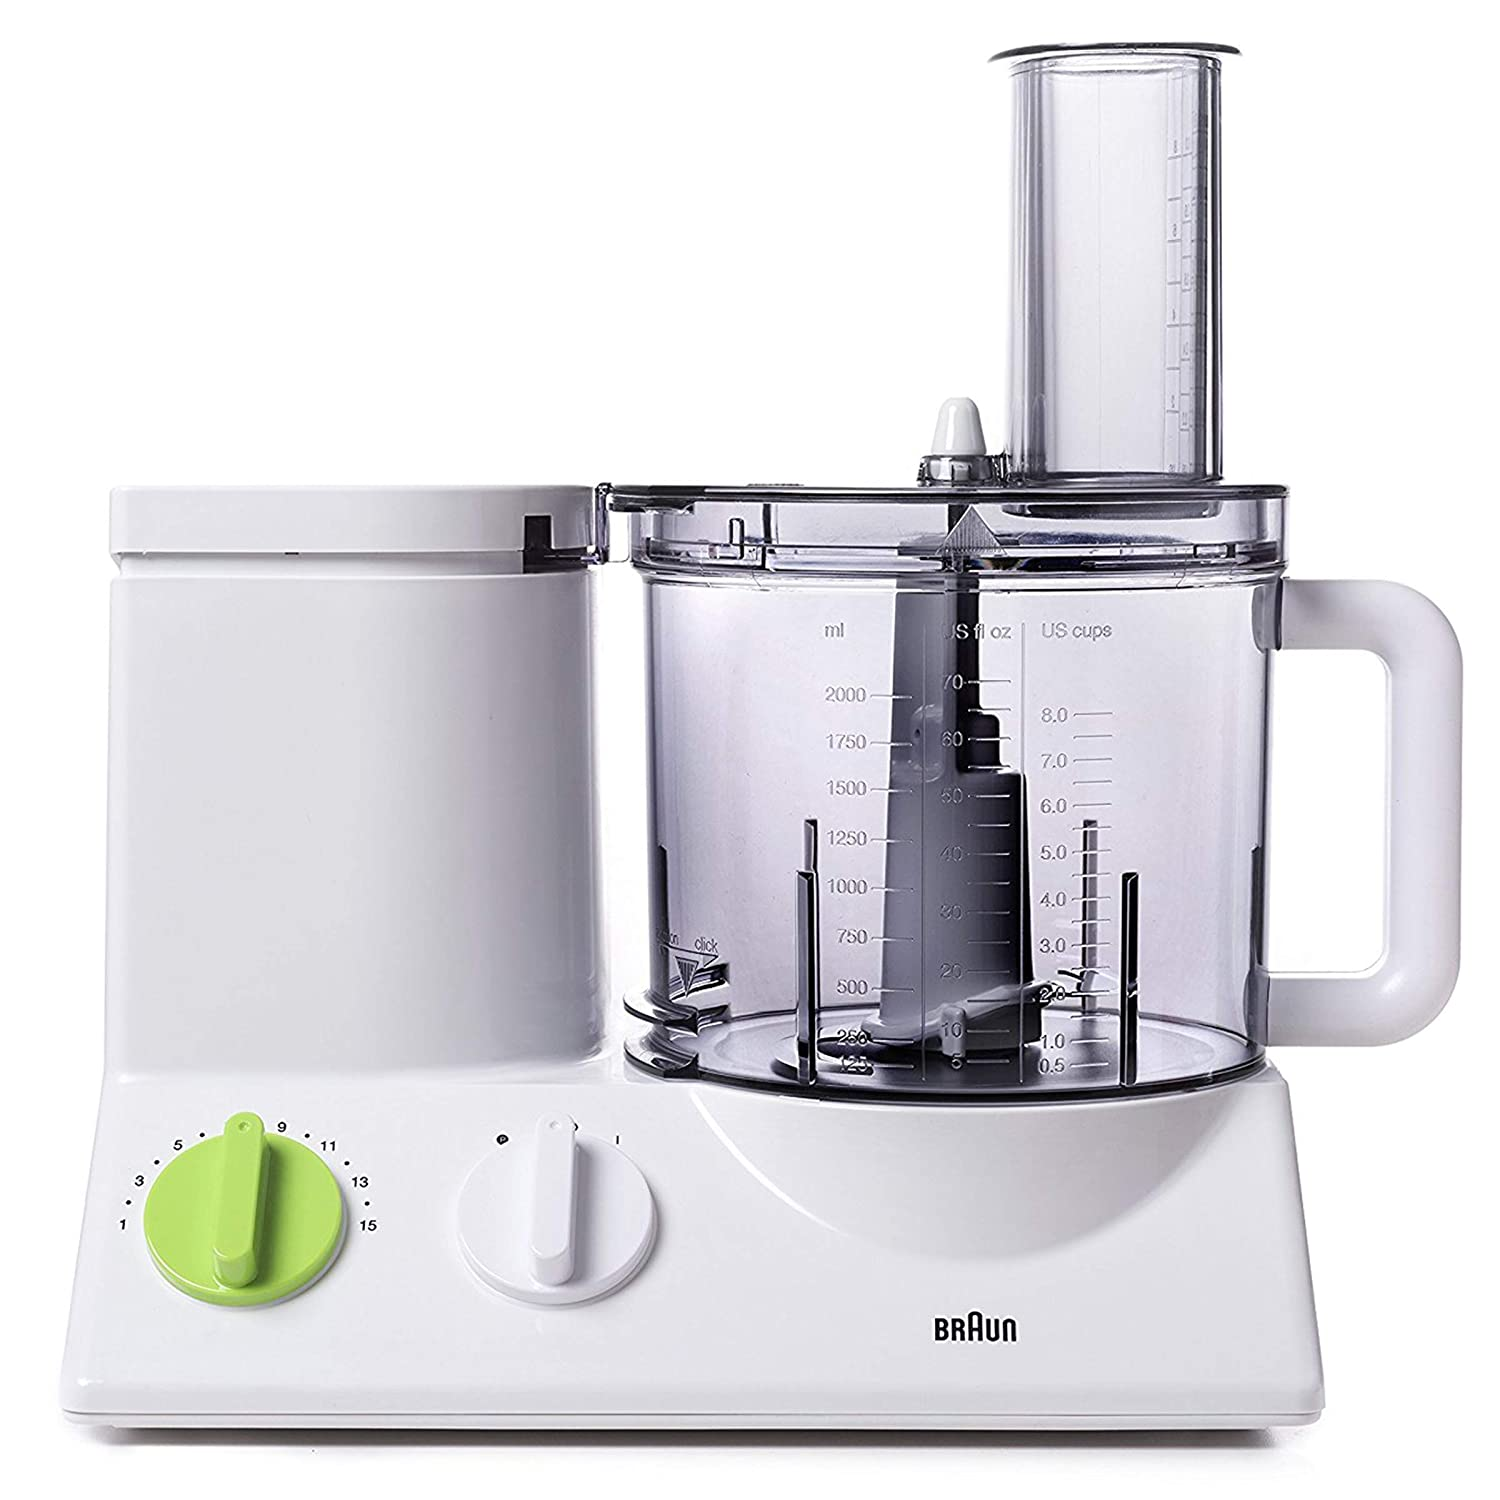 Braun FP3020 12 Cup Food Processor Ultra Quiet Powerful motor